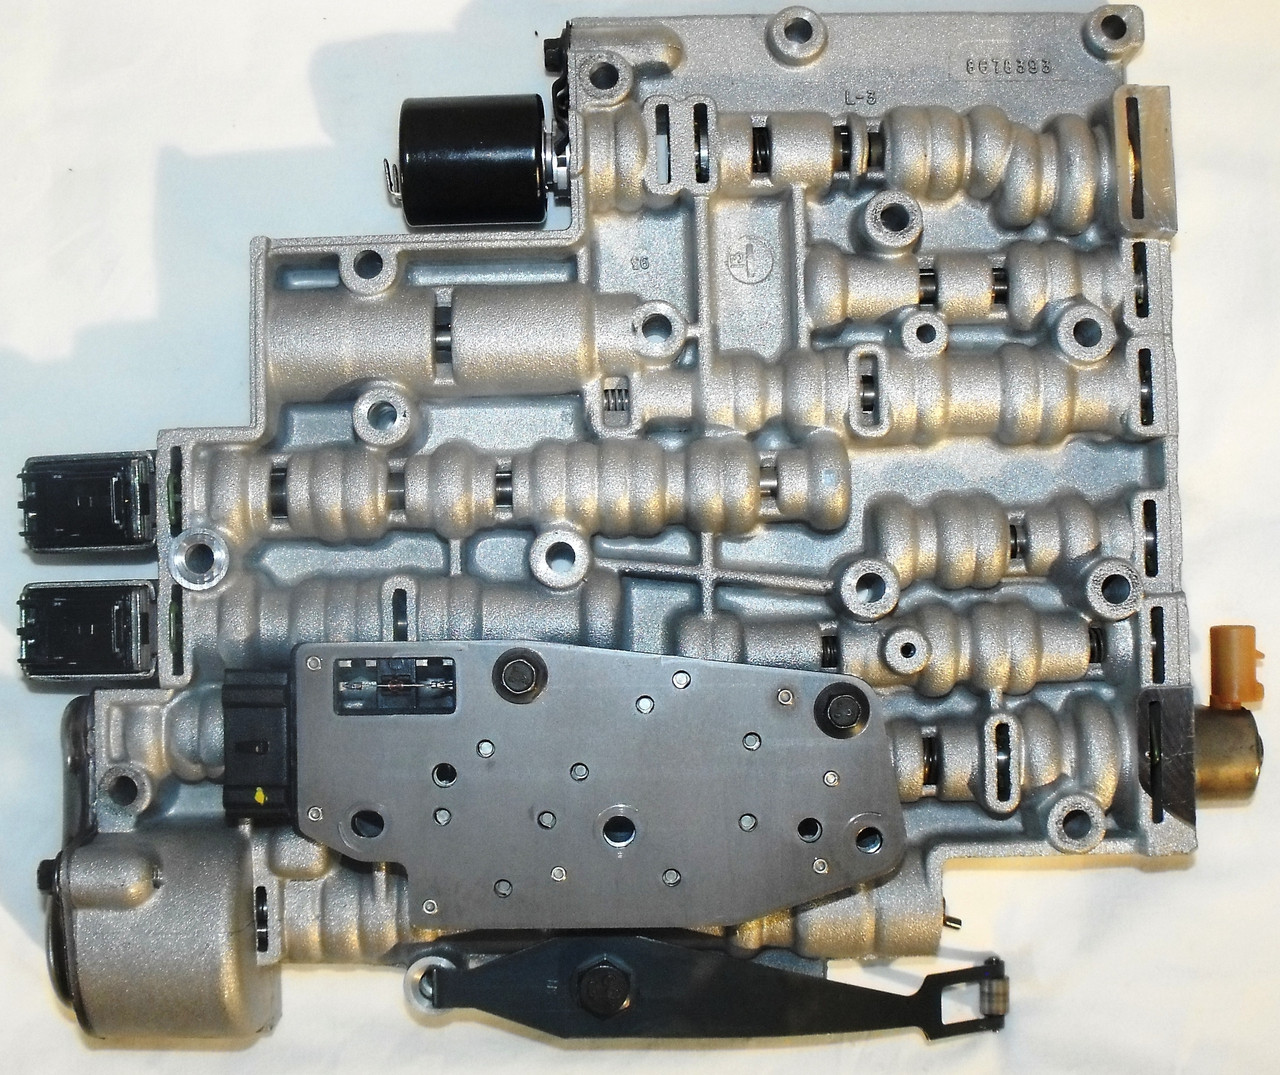 D Can I Bypass Heator Monapr Edt further E A in addition Te Solenoids Scheme in addition D R L Experts Tcc Wiring also A Cf Clutch Application. on 700r4 transmission valve body wiring